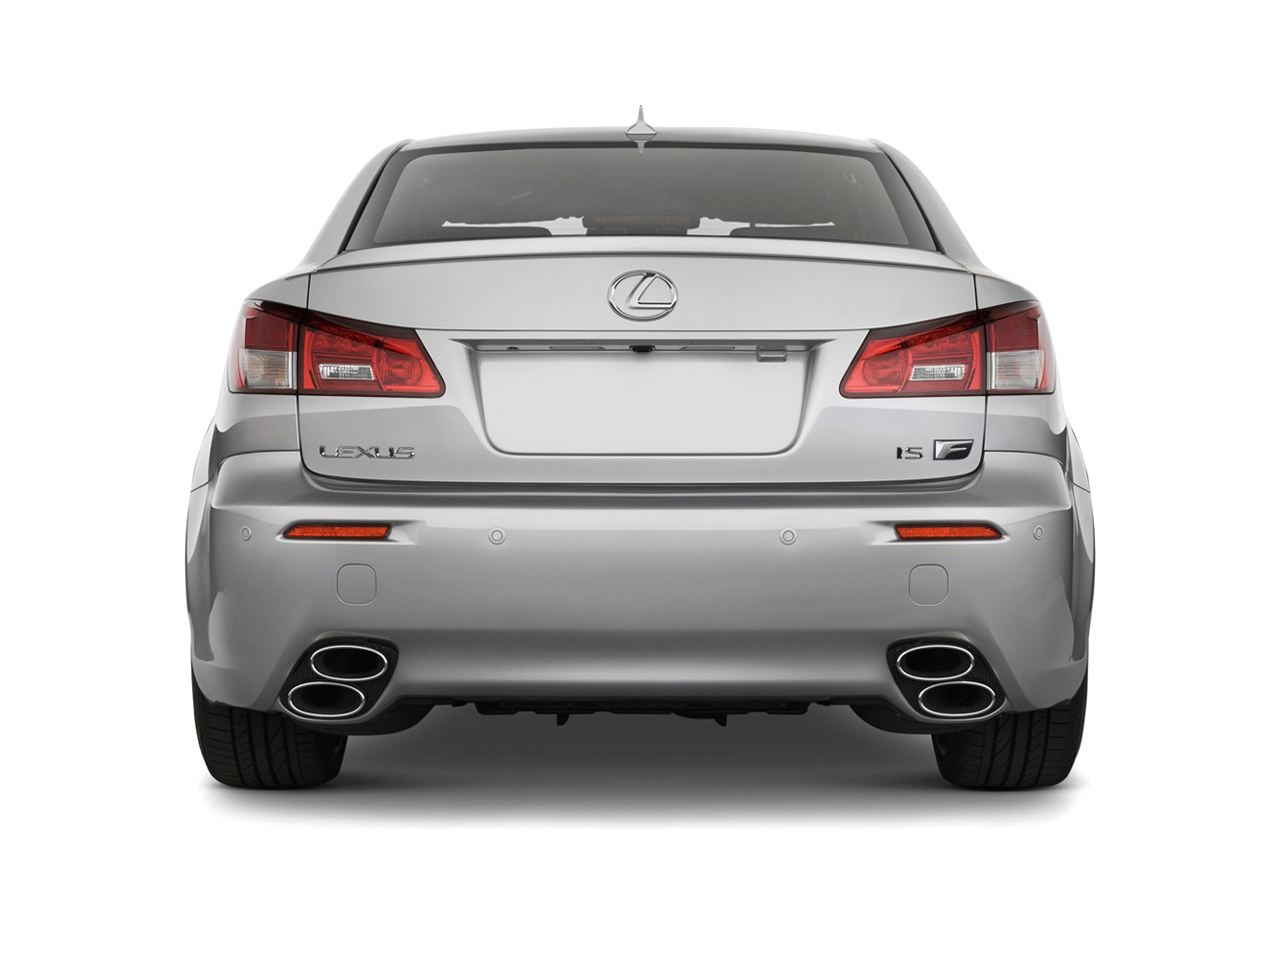 2010 lexus is f review ratings specs prices and photos the car connection. Black Bedroom Furniture Sets. Home Design Ideas